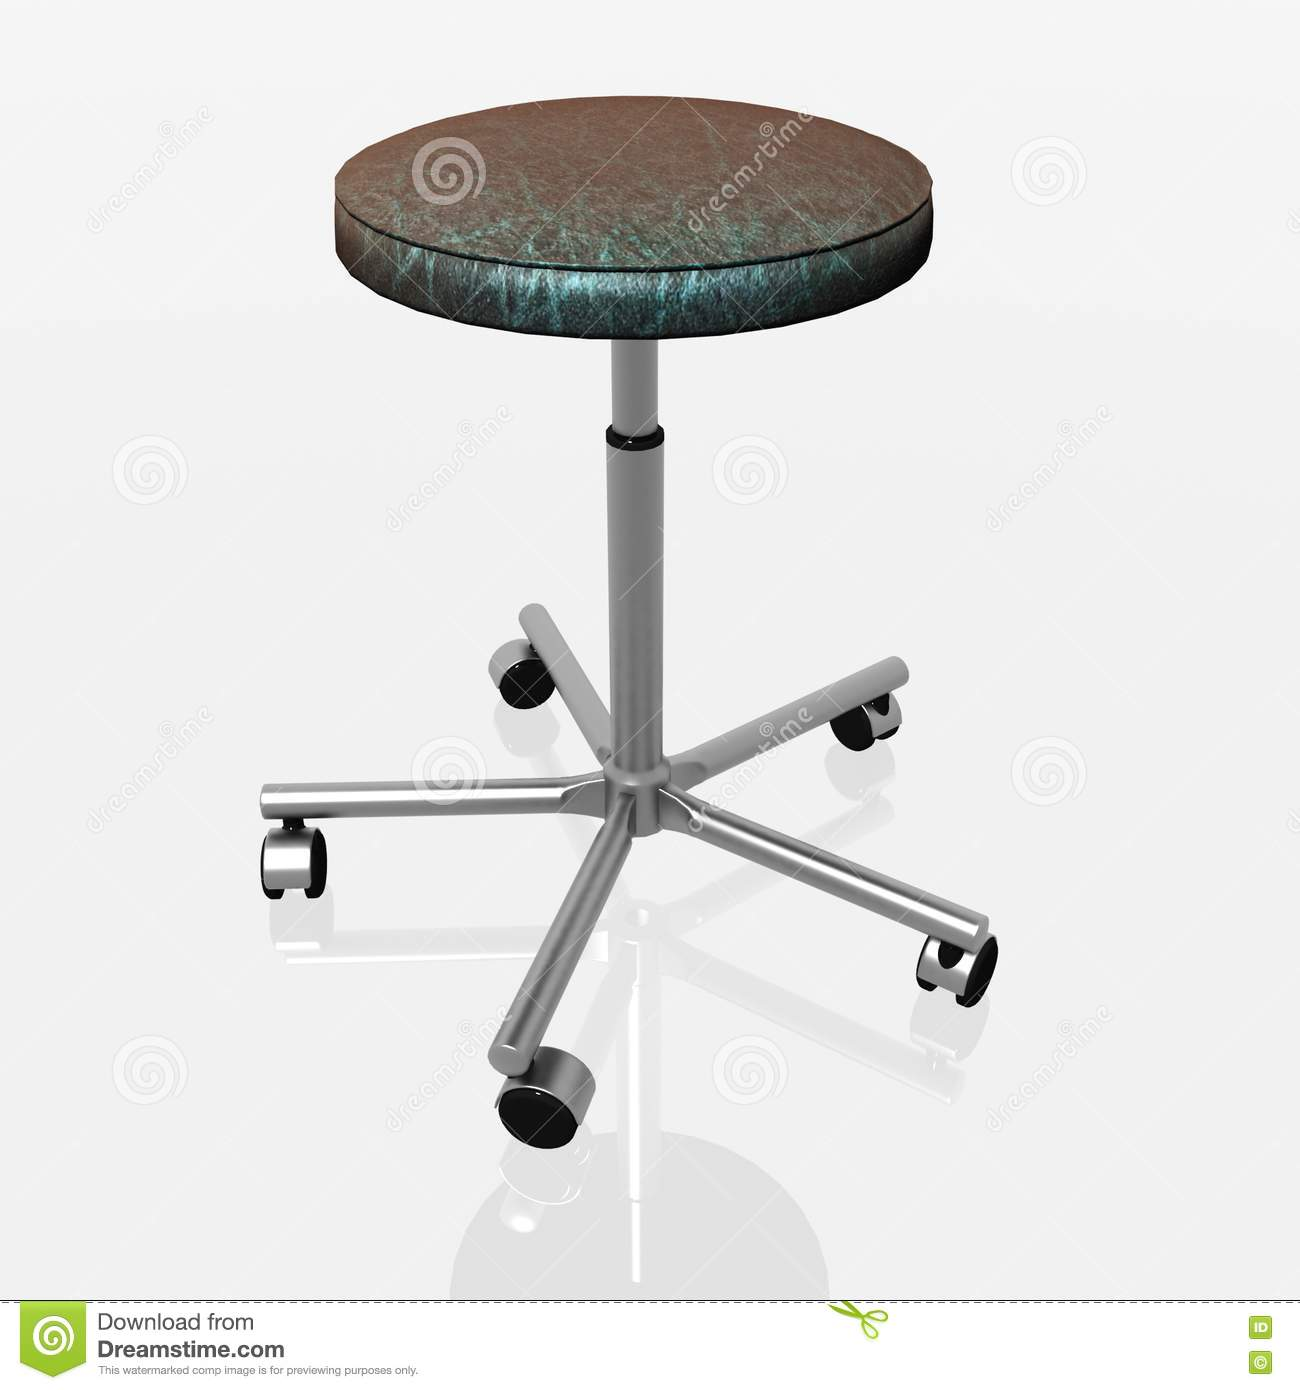 revolving chair without wheels blue bay coconut spiced rum rotating royalty free stock photos image 21101918